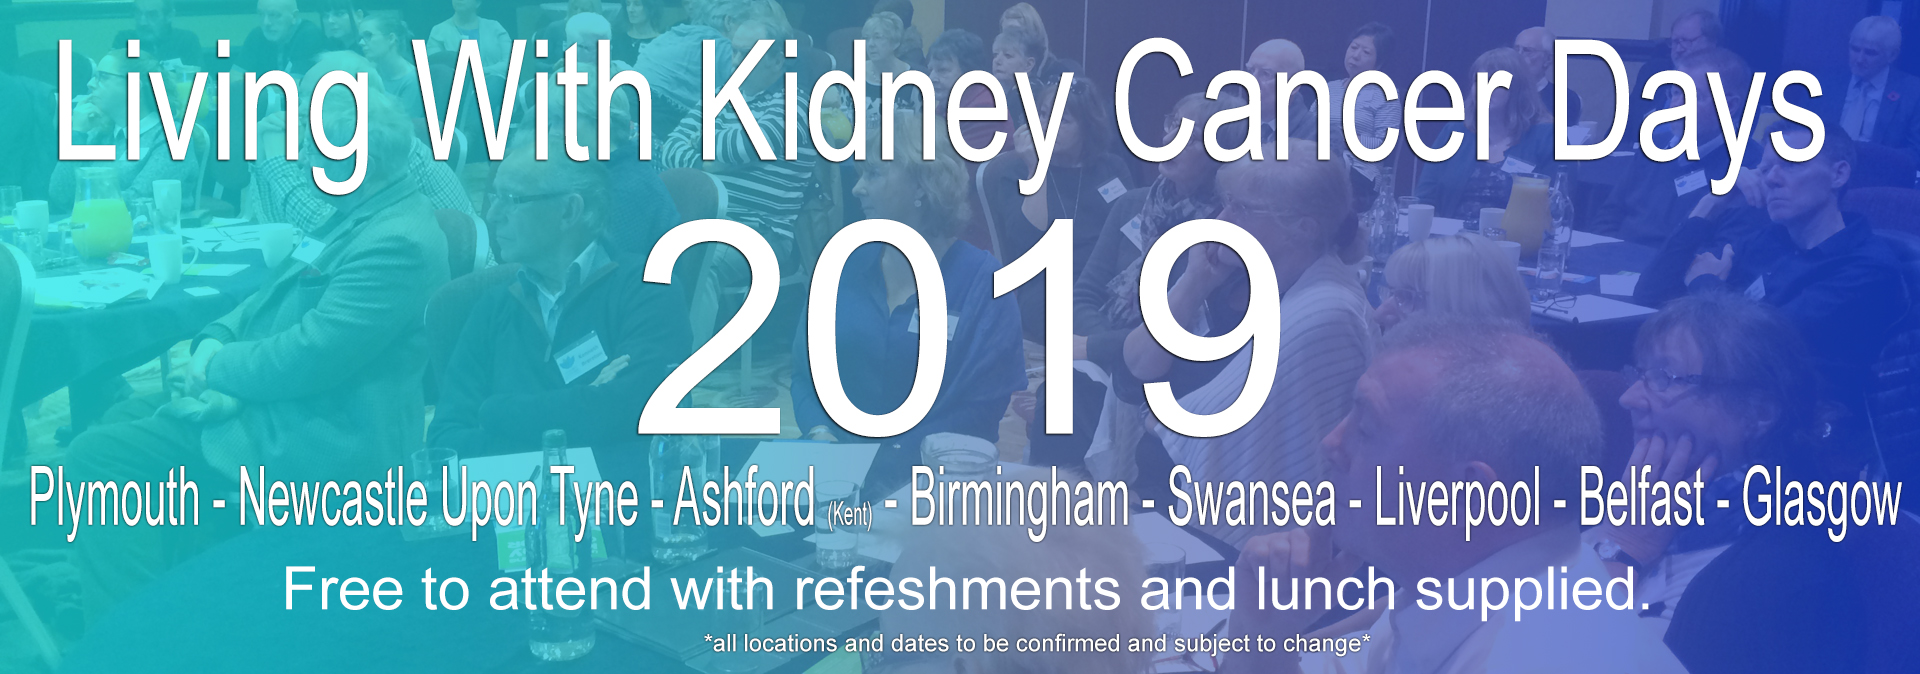 living with kidney cancer days 2019